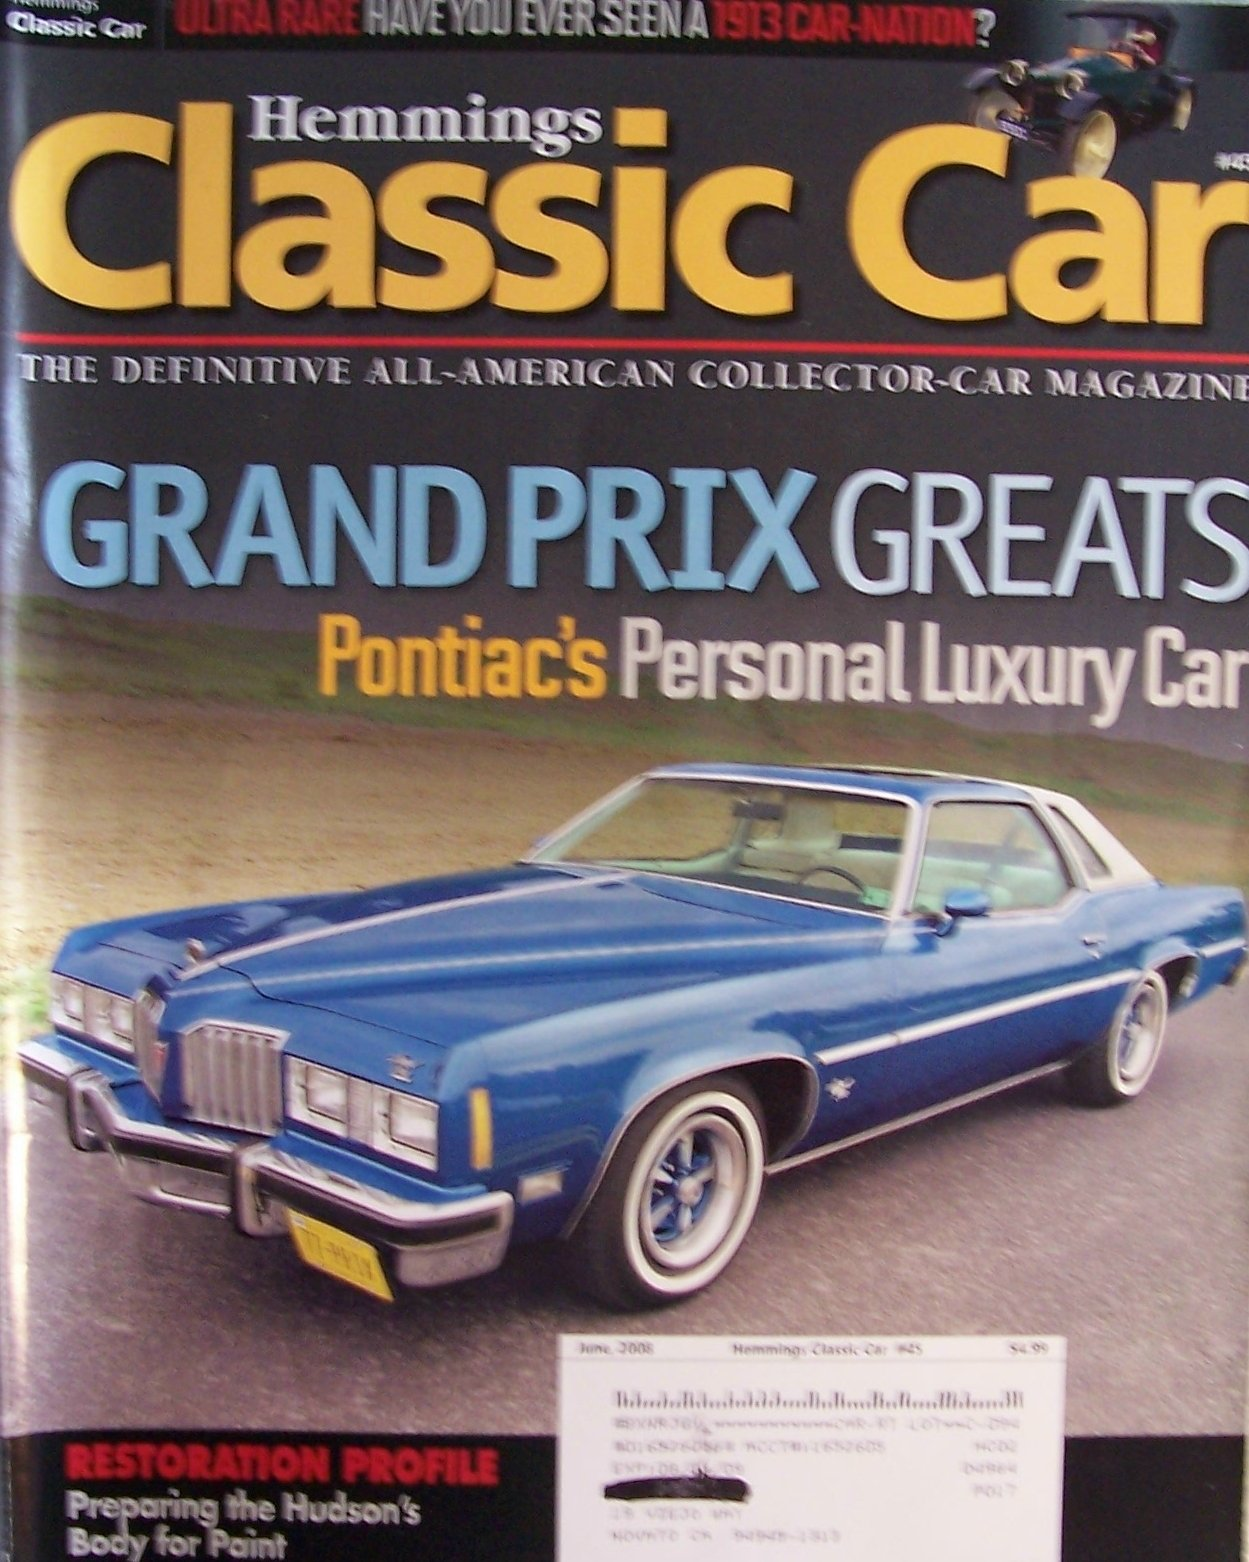 Hemmings Classic Car Magazine June 2008 Grand Prix Greats